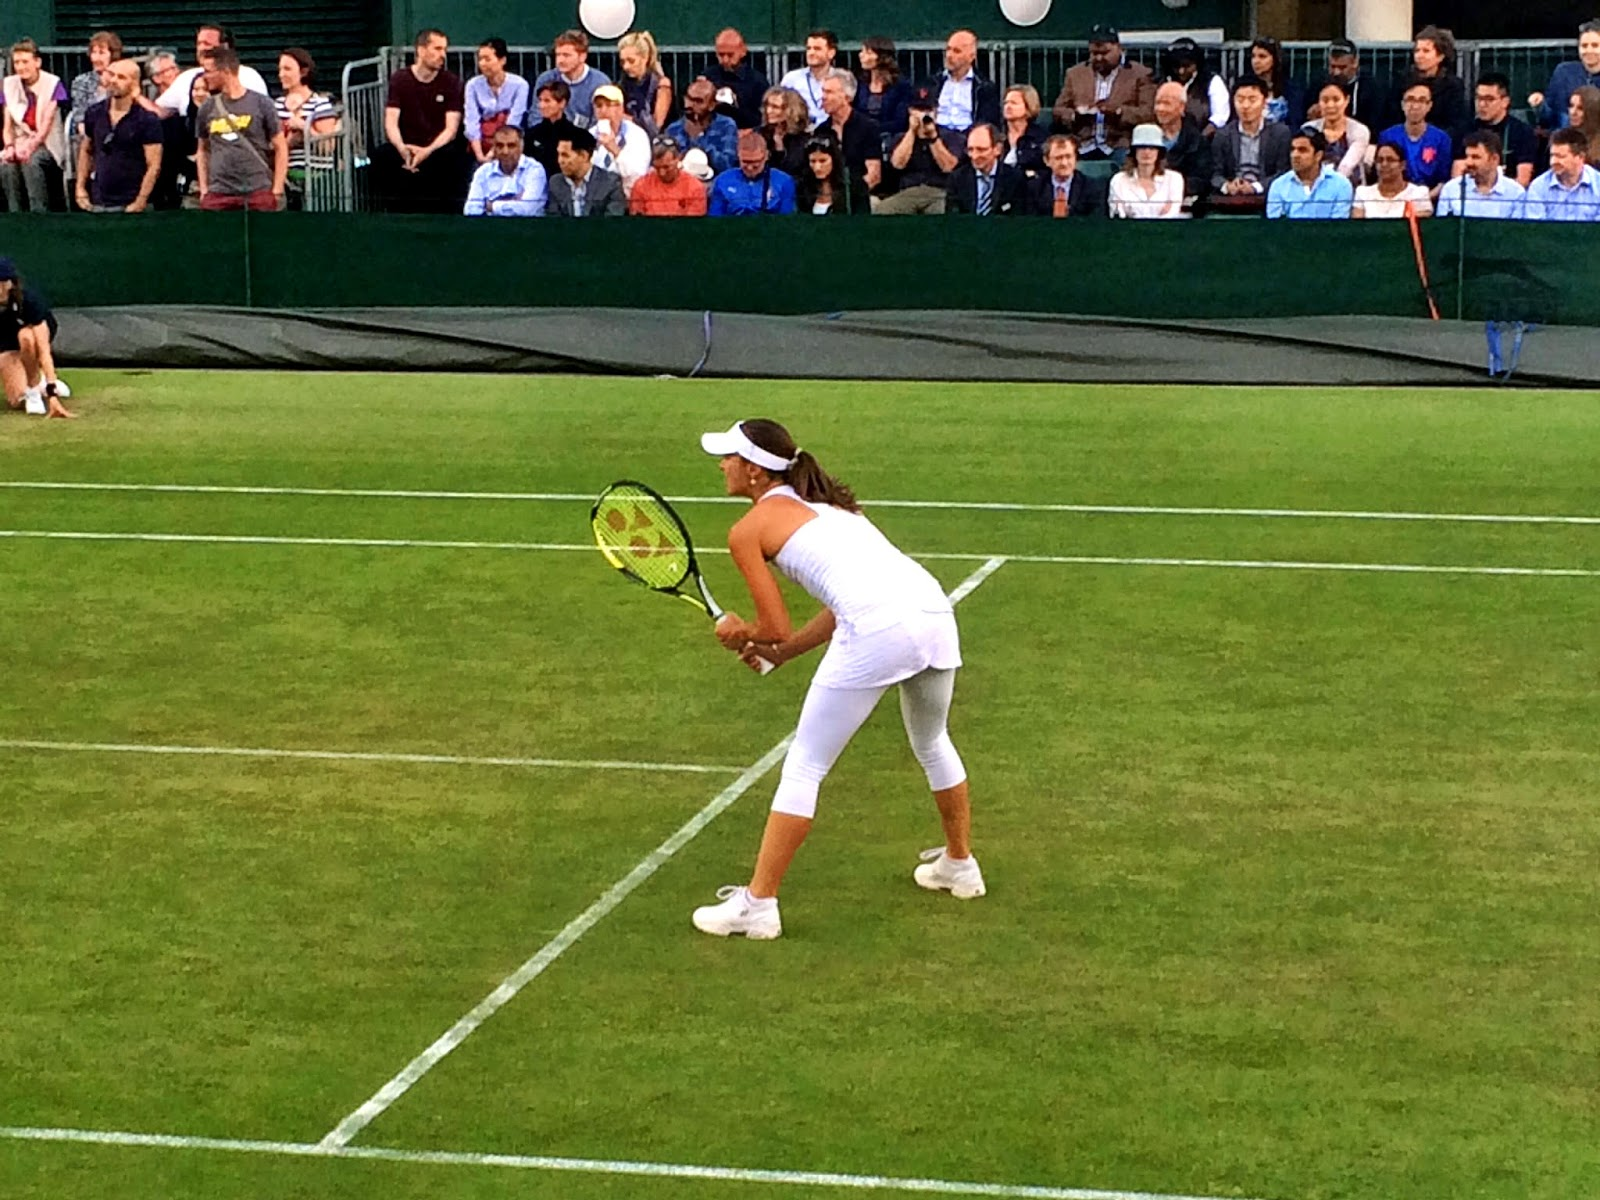 Martina Hingis playing at Wimbledon 2014